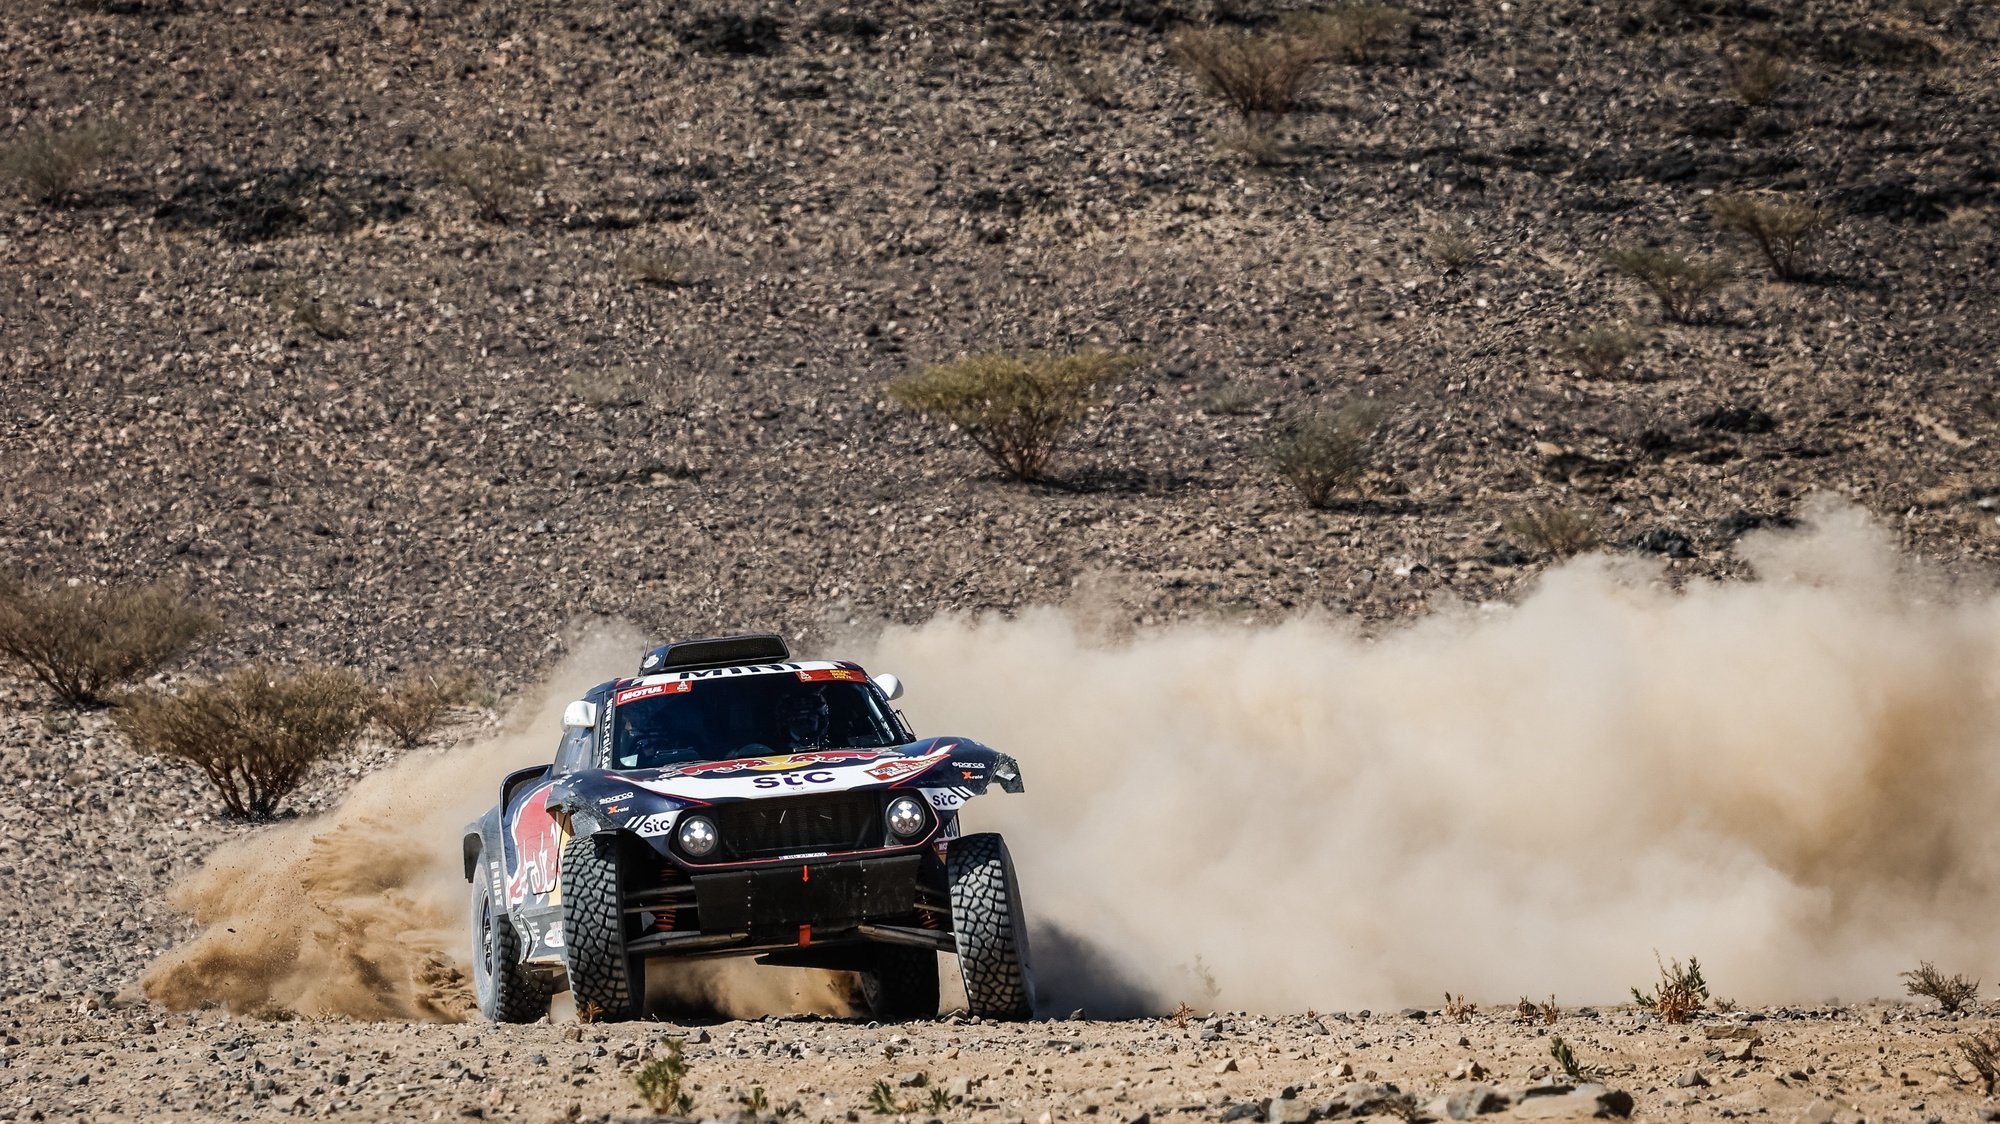 epa08916540 A handout photo made available by ASO of Carlos Sainz Carlos and Lucas Cruz of Spain, Mini, X-Raid Mini JCW Team, in action during the 1st stage of the Dakar 2021 between Jeddah and Bisha, in Saudi Arabia on January 3, 2021.  EPA/Florent Gooden HANDOUT via ASO SHUTTERSTOCK OUT HANDOUT EDITORIAL USE ONLY/NO SALES/NO ARCHIVES